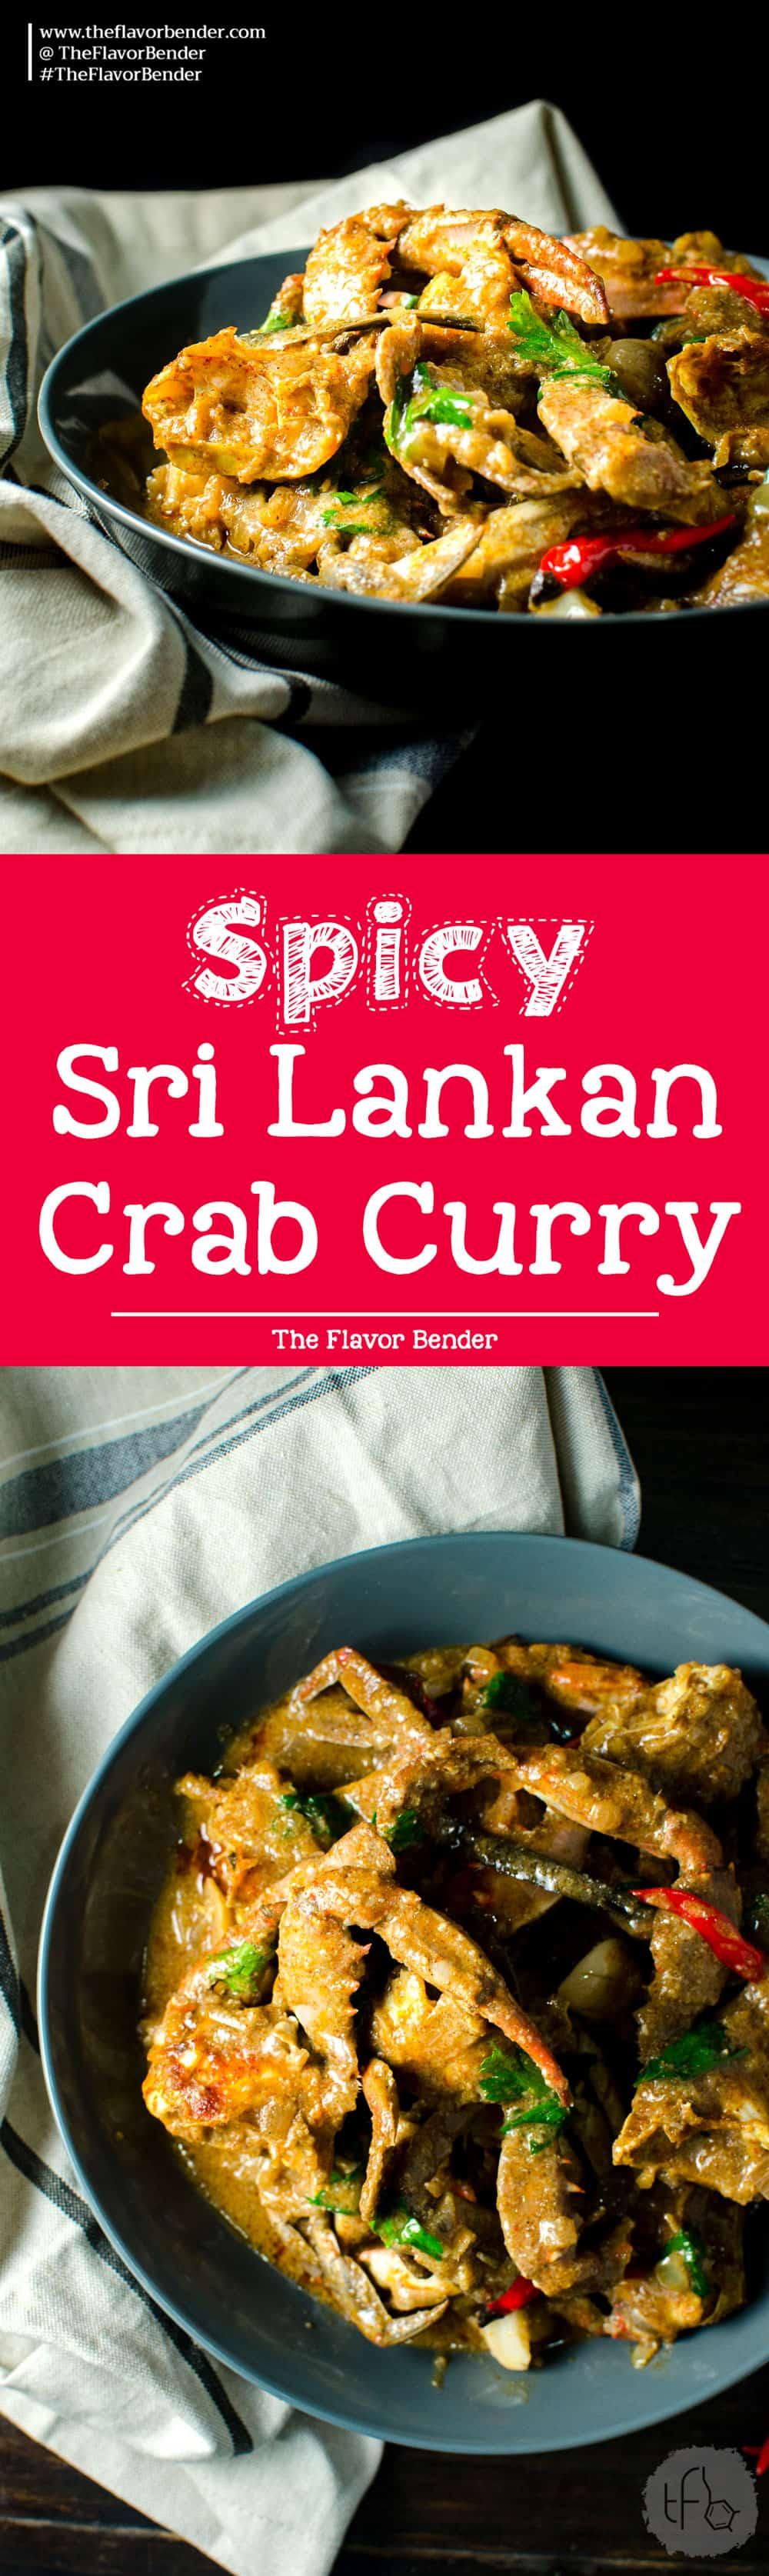 Spicy Sri Lankan Crab Curry - Made with fresh blue swimmers crabs, and an aromatic and flavorful Sri Lankan curry base. It's a delicious and comforting seafood curry that's authentically Sri Lankan.